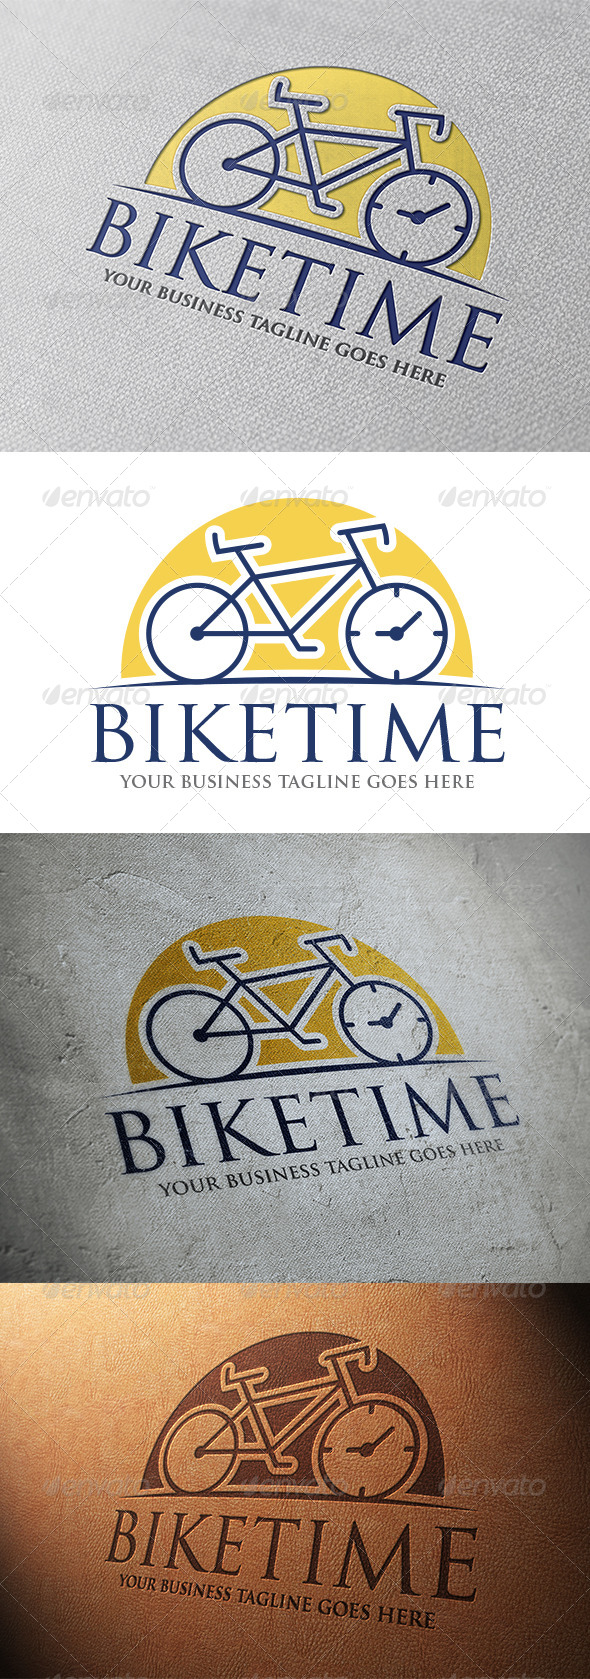 Bike Time Logo Template - Objects Logo Templates